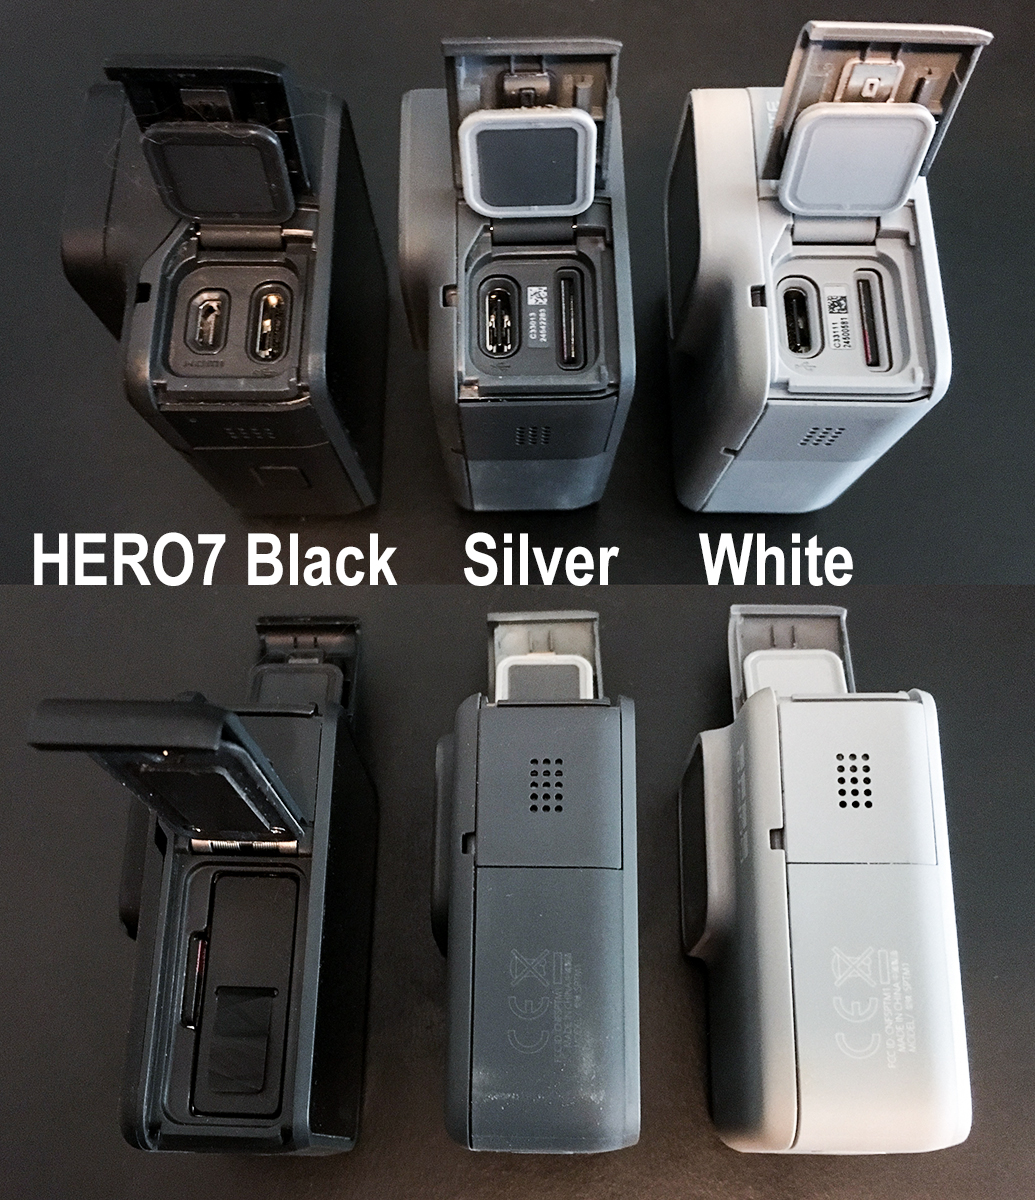 GoPro HERO7 Black, Silver and White Comparisons 12